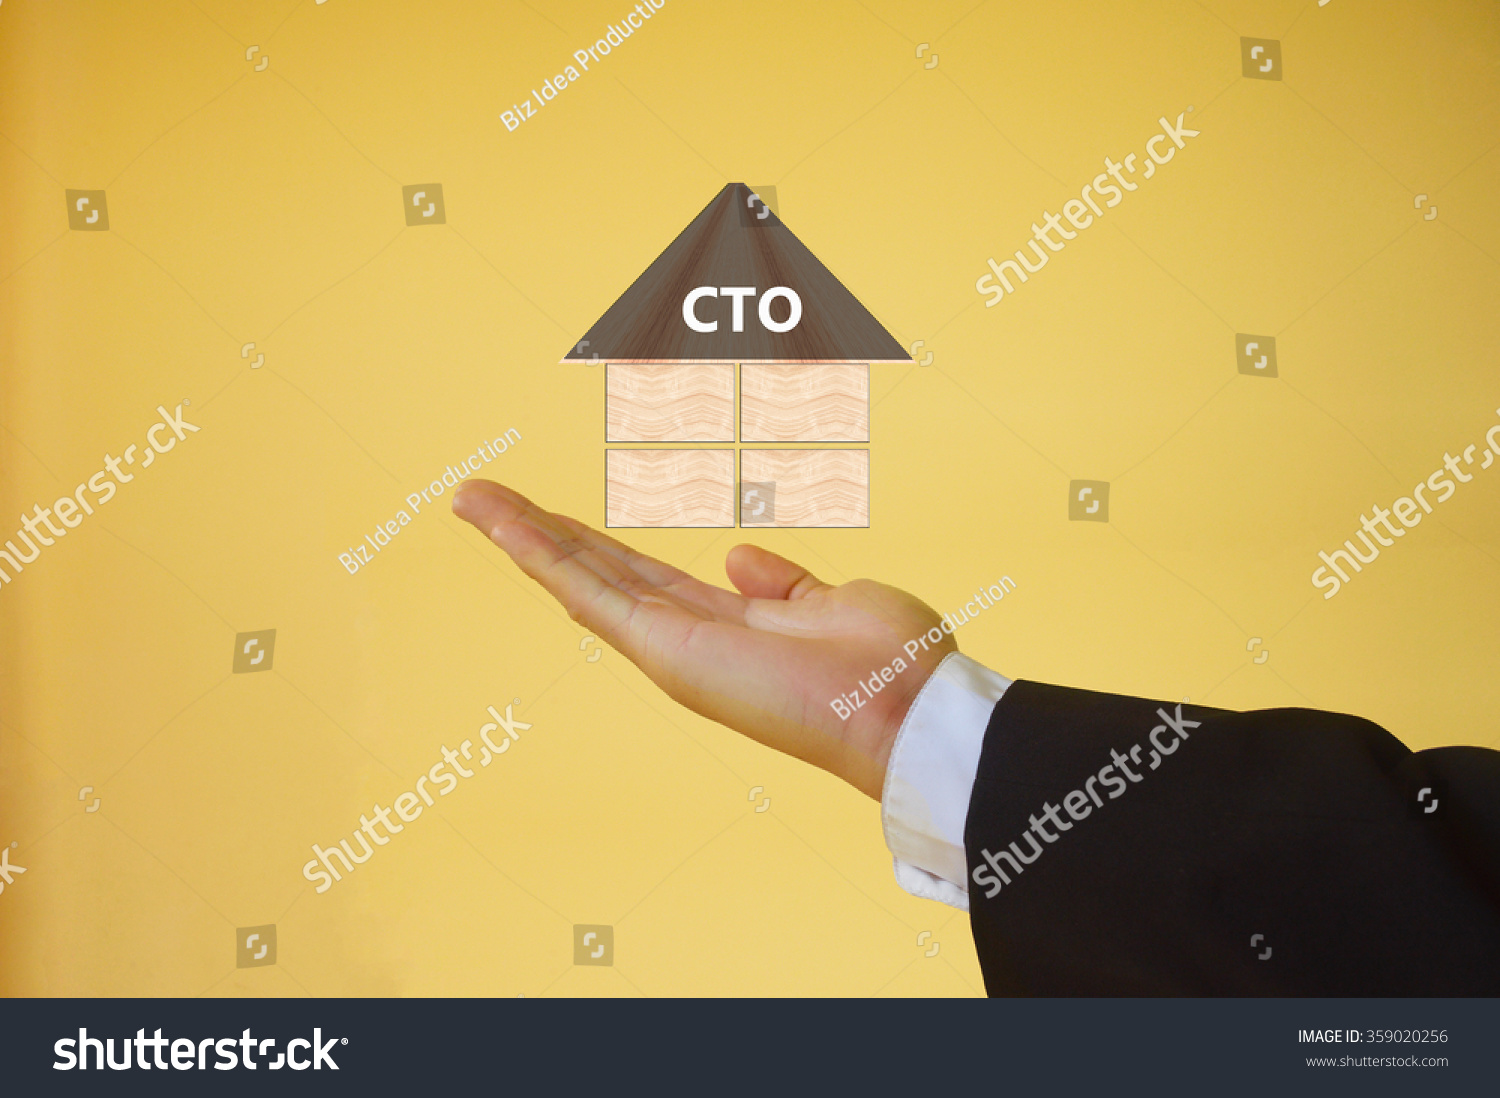 Chief technology officer stock photo 359020256 shutterstock - Chief information technology officer ...